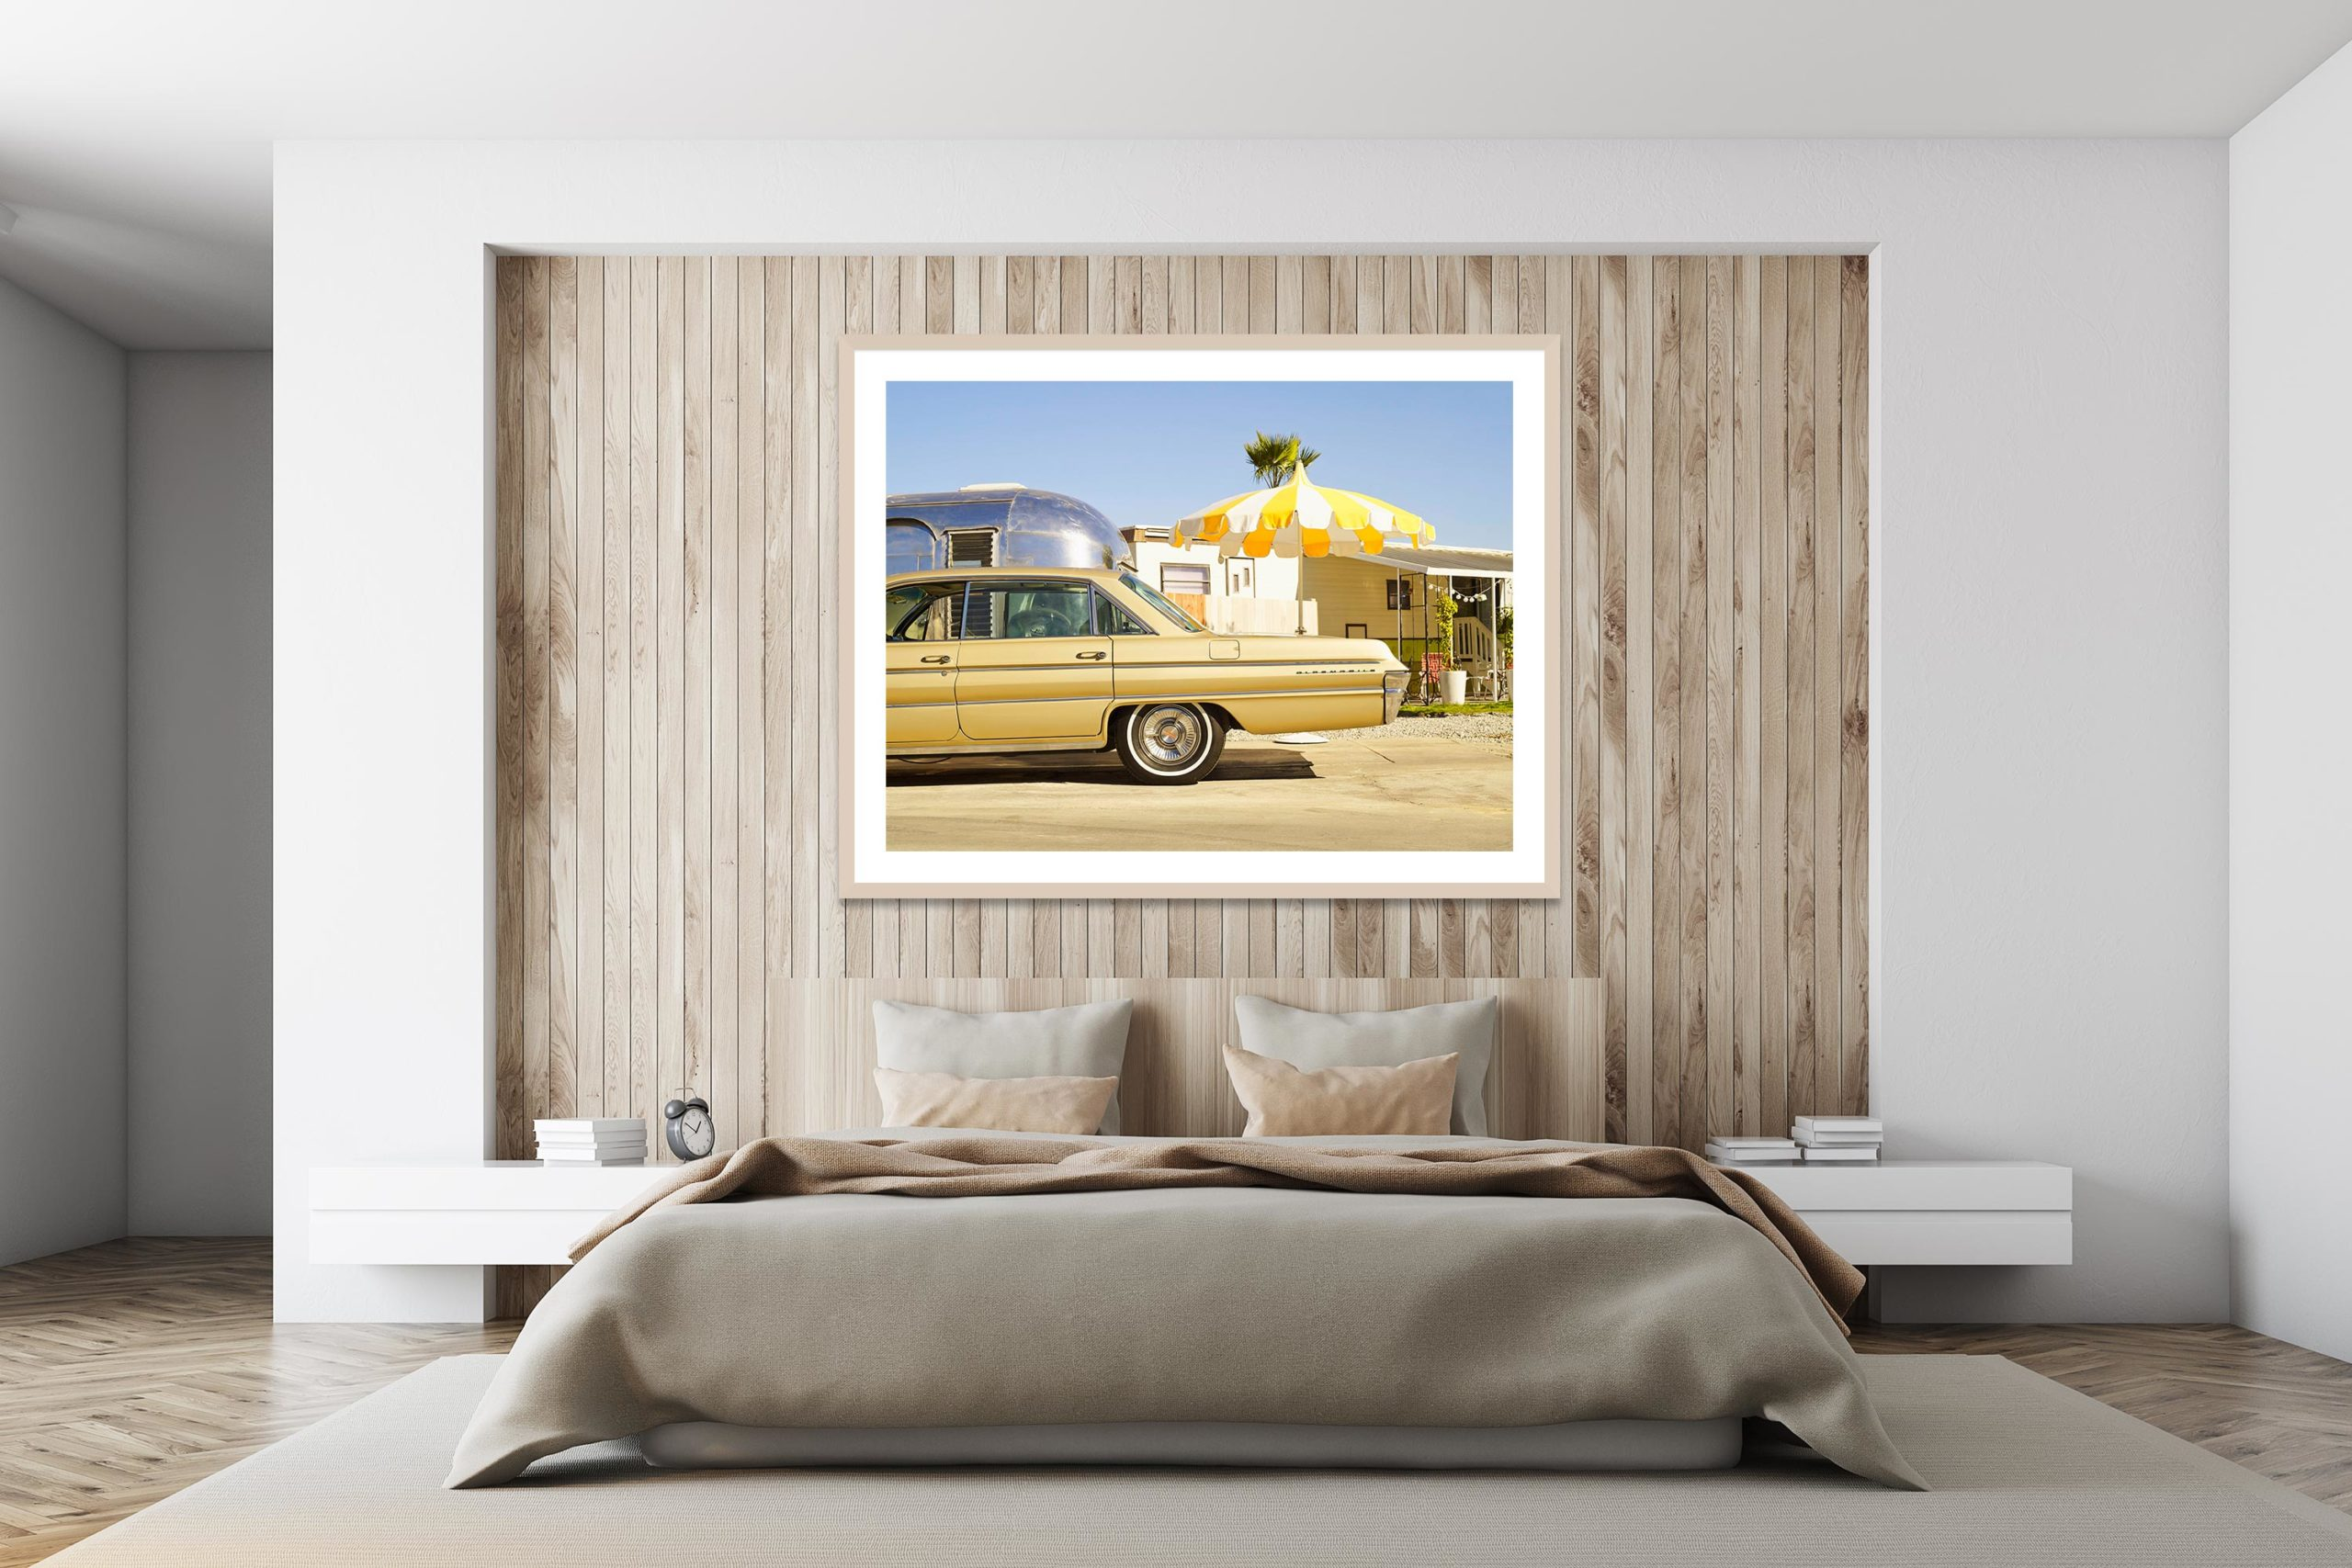 Oldsmobile In The Trailer Park - Timber Frame - I Heart Palm Springs Collection - Fine Art Photography by Toby Dixon